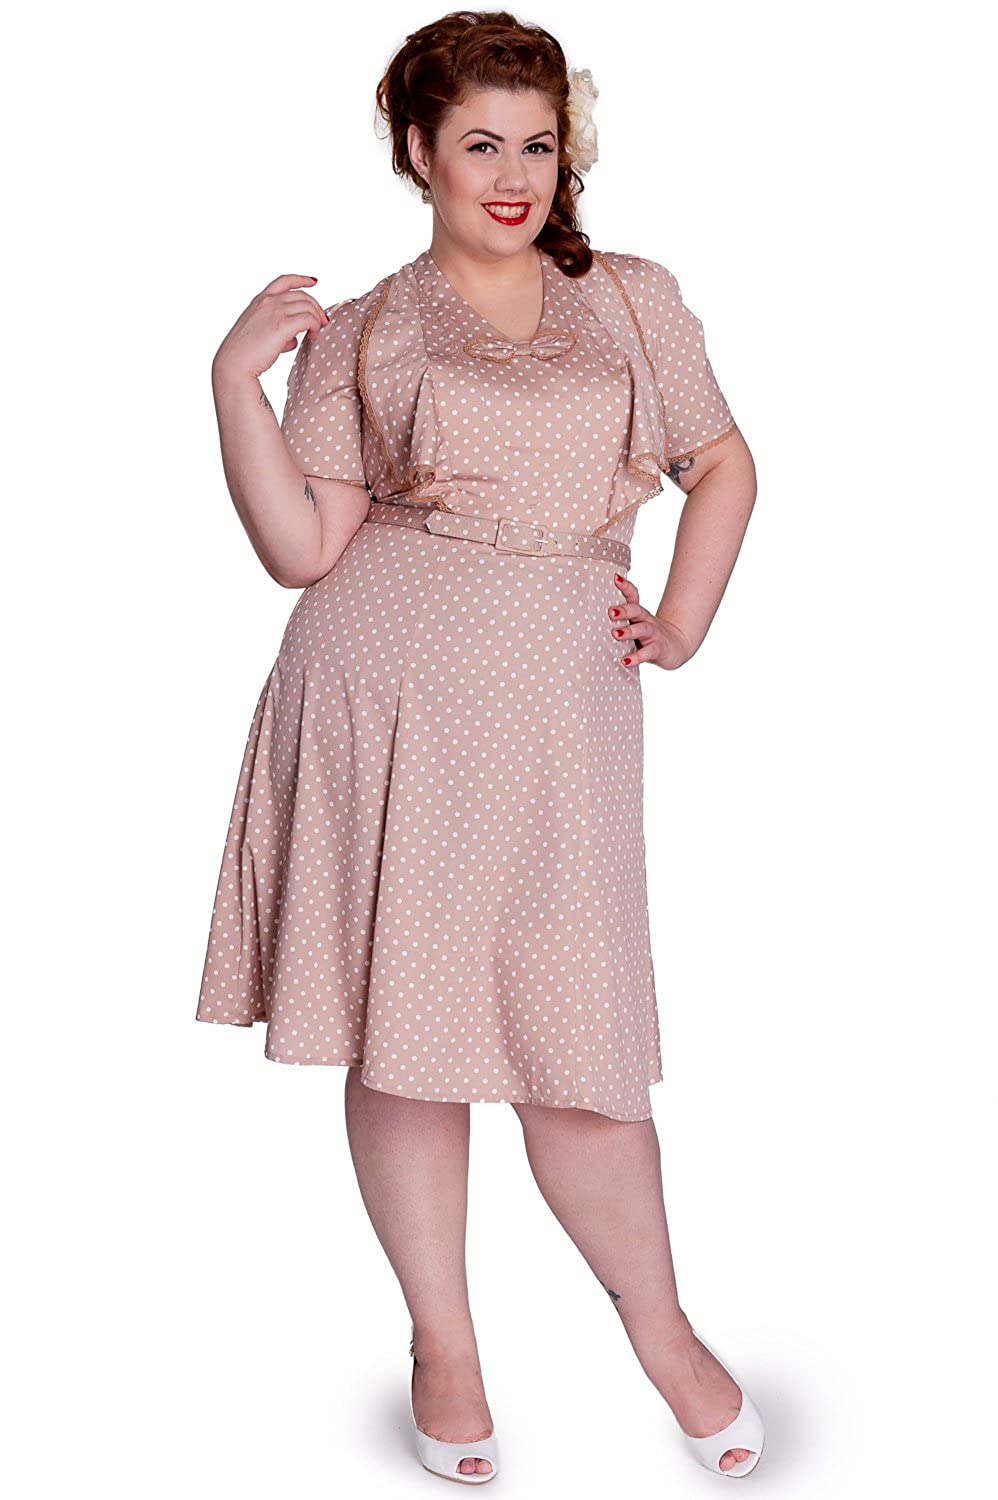 1940s Plus Size Fashion Advice Hell Bunny Jennifer 40s 50s Landgirl WW2 Retro Polka Dot Vintage Tea Party Dress £18.99 AT vintagedancer.com